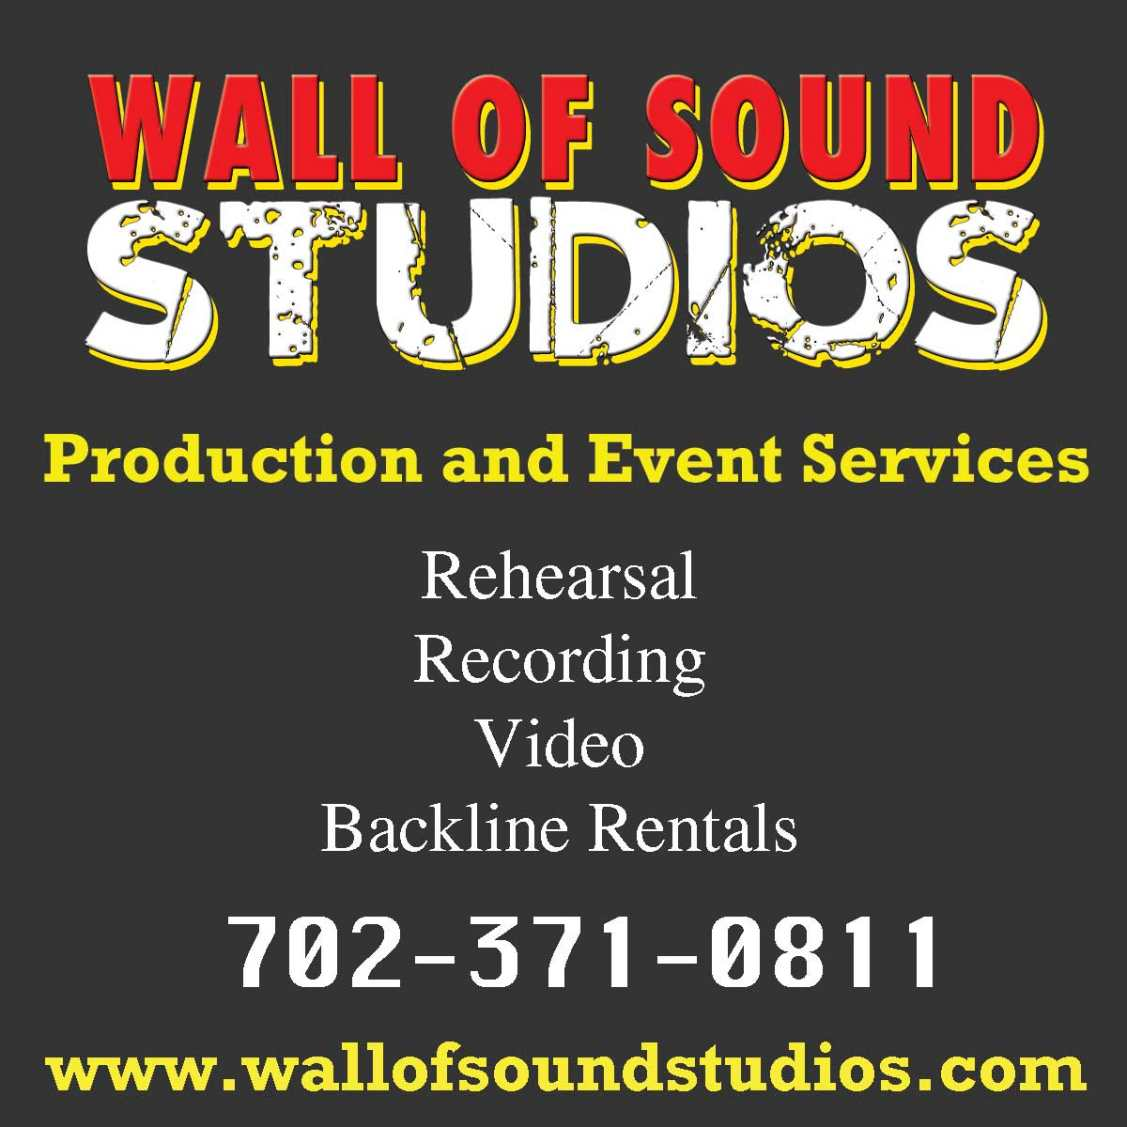 Wall of Sound Studios & Production Las Vegas